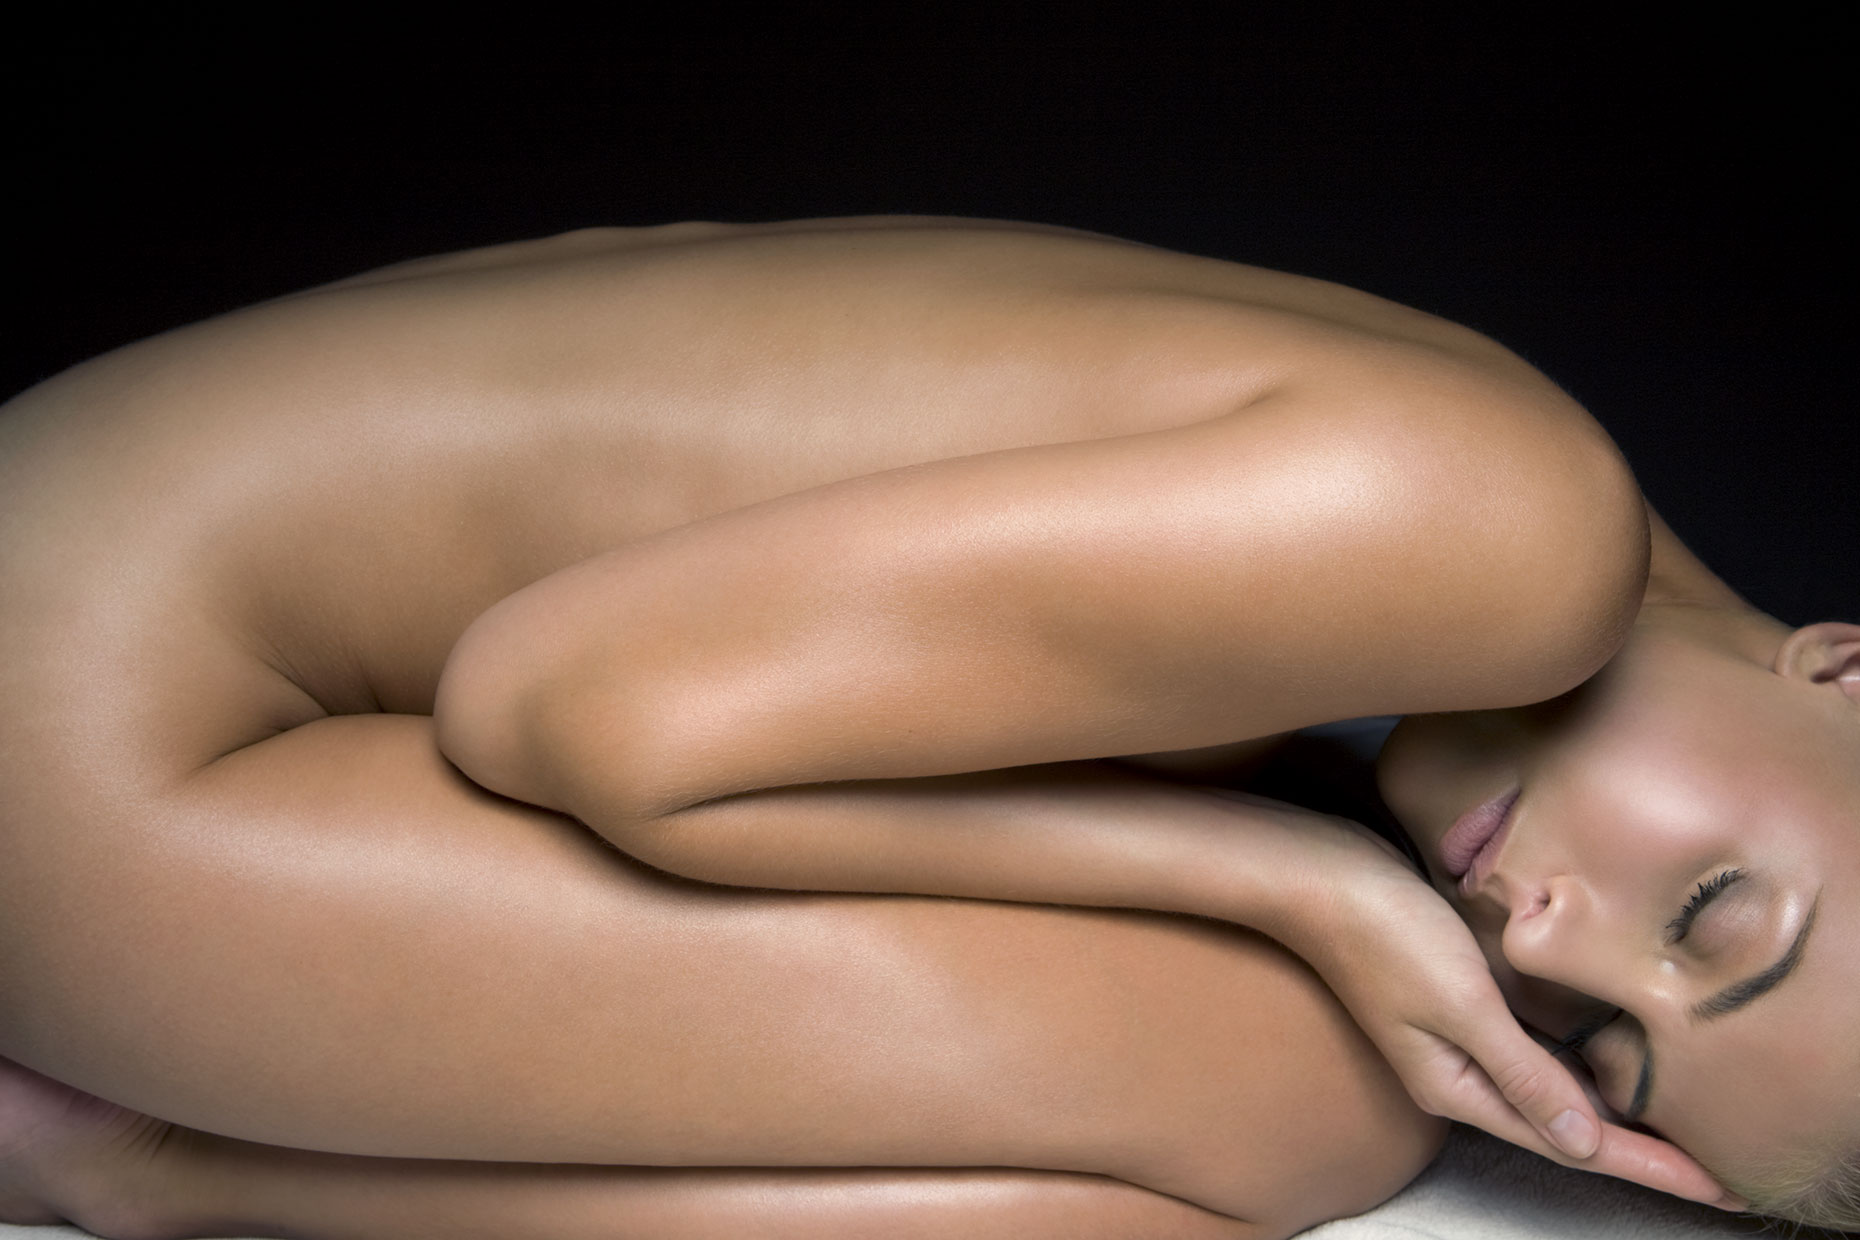 Naked young woman in fetal position, side view.